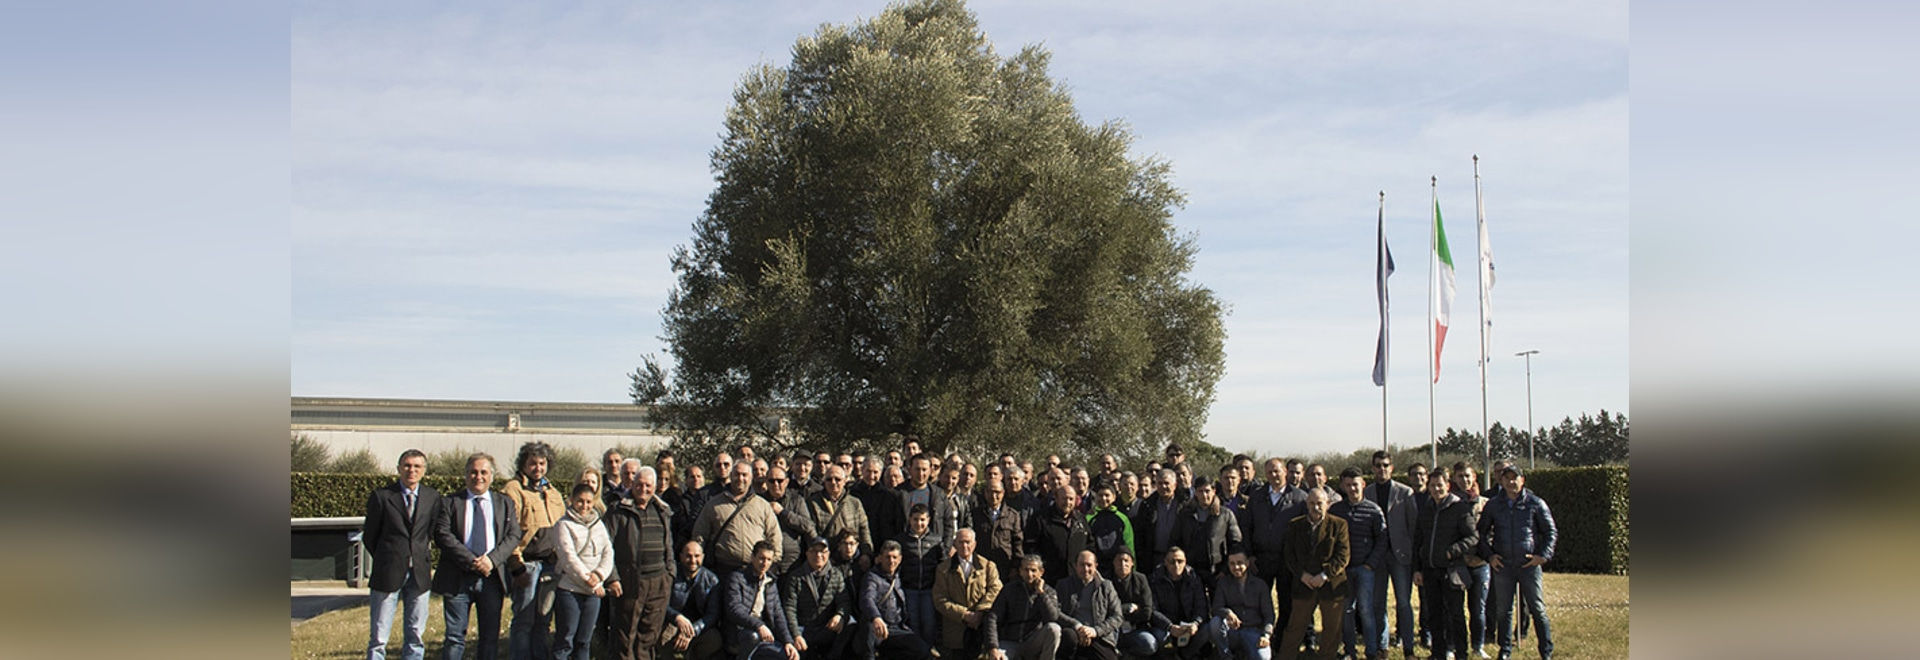 THE OLIVE GROWERS FROM CALABRIA VISIT THE PIERALISI GROUP